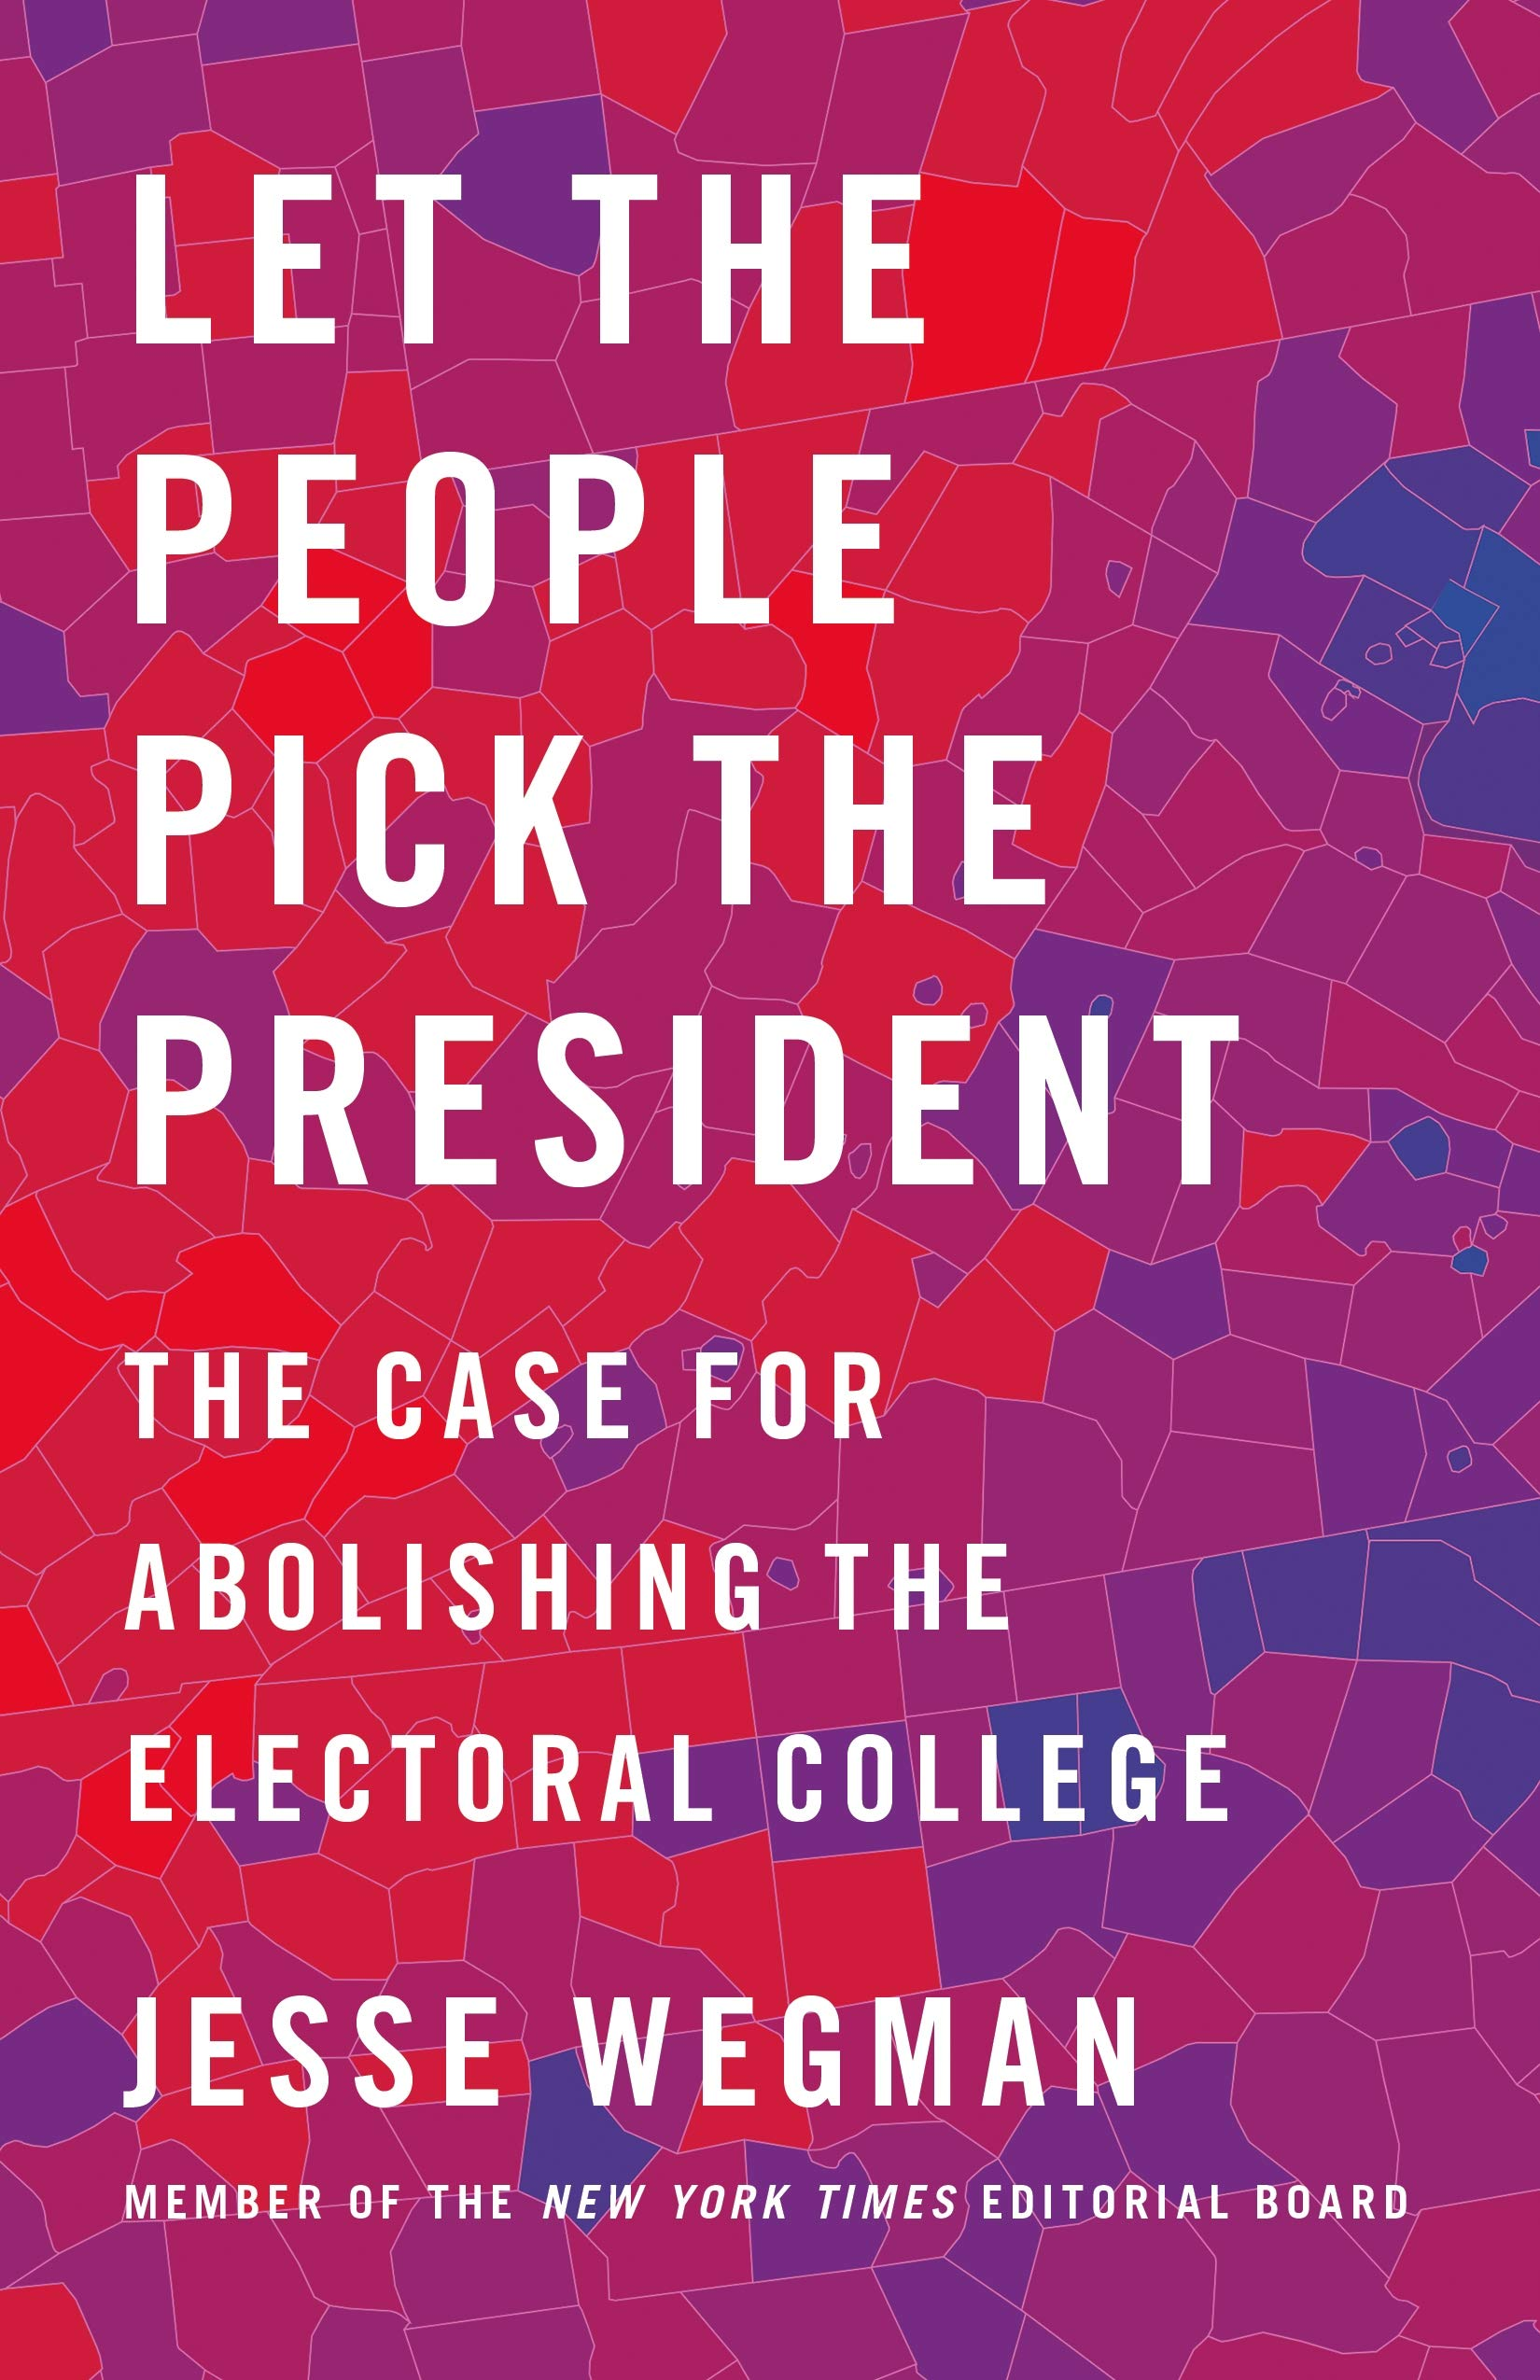 Let the people pick the president: the case for ab